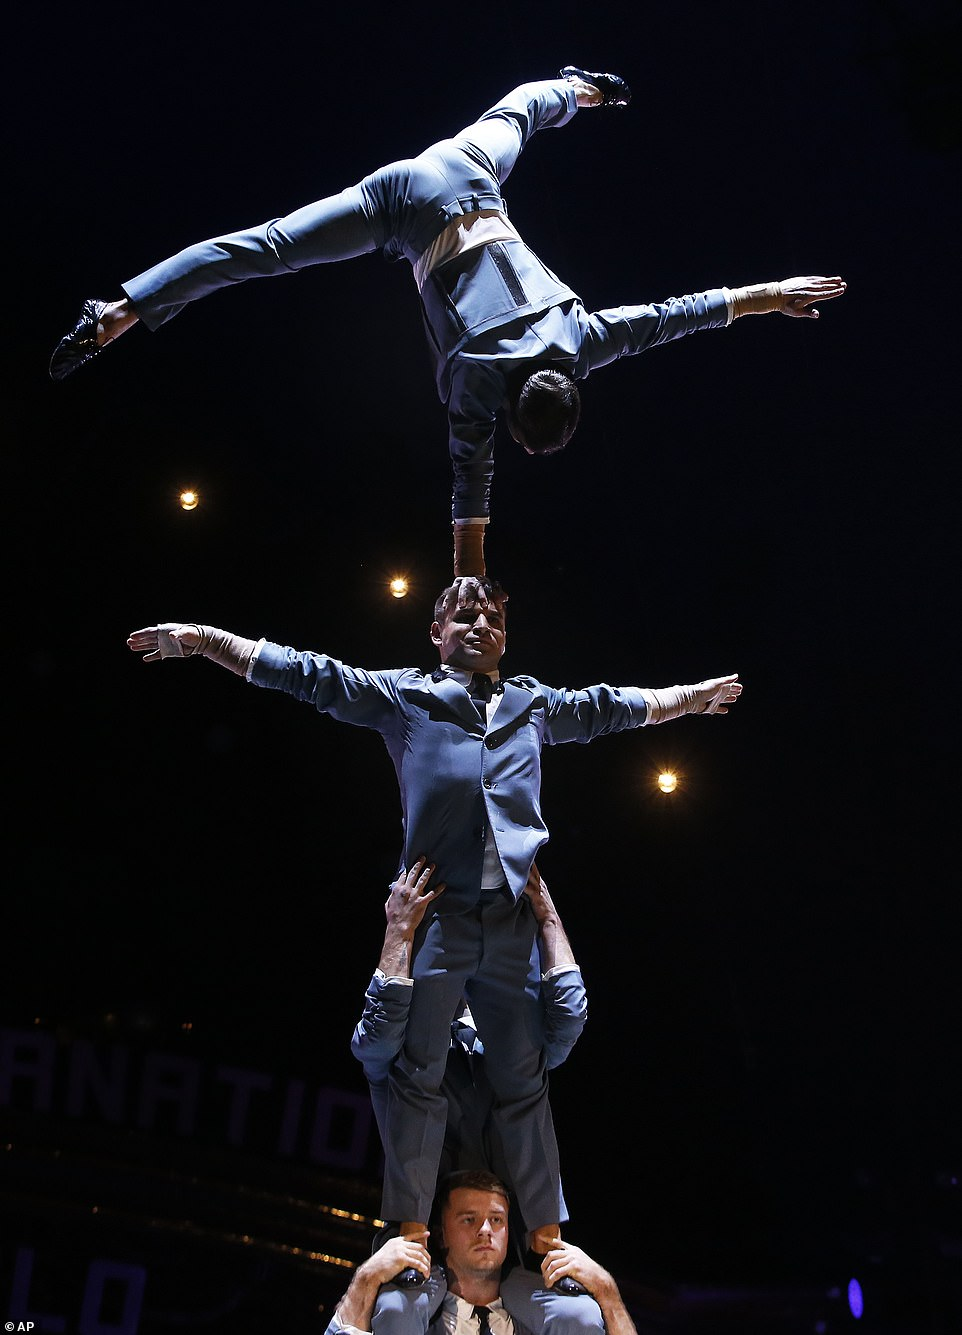 Quatuor Prilepin acrobats perform during the opening ceremony of the 43rd Monte-Carlo International Circus Festival in Monaco.The much-anticipated annual circus has become something of an institution in the principality and has been running since 1974, with this year's event running  until January 27